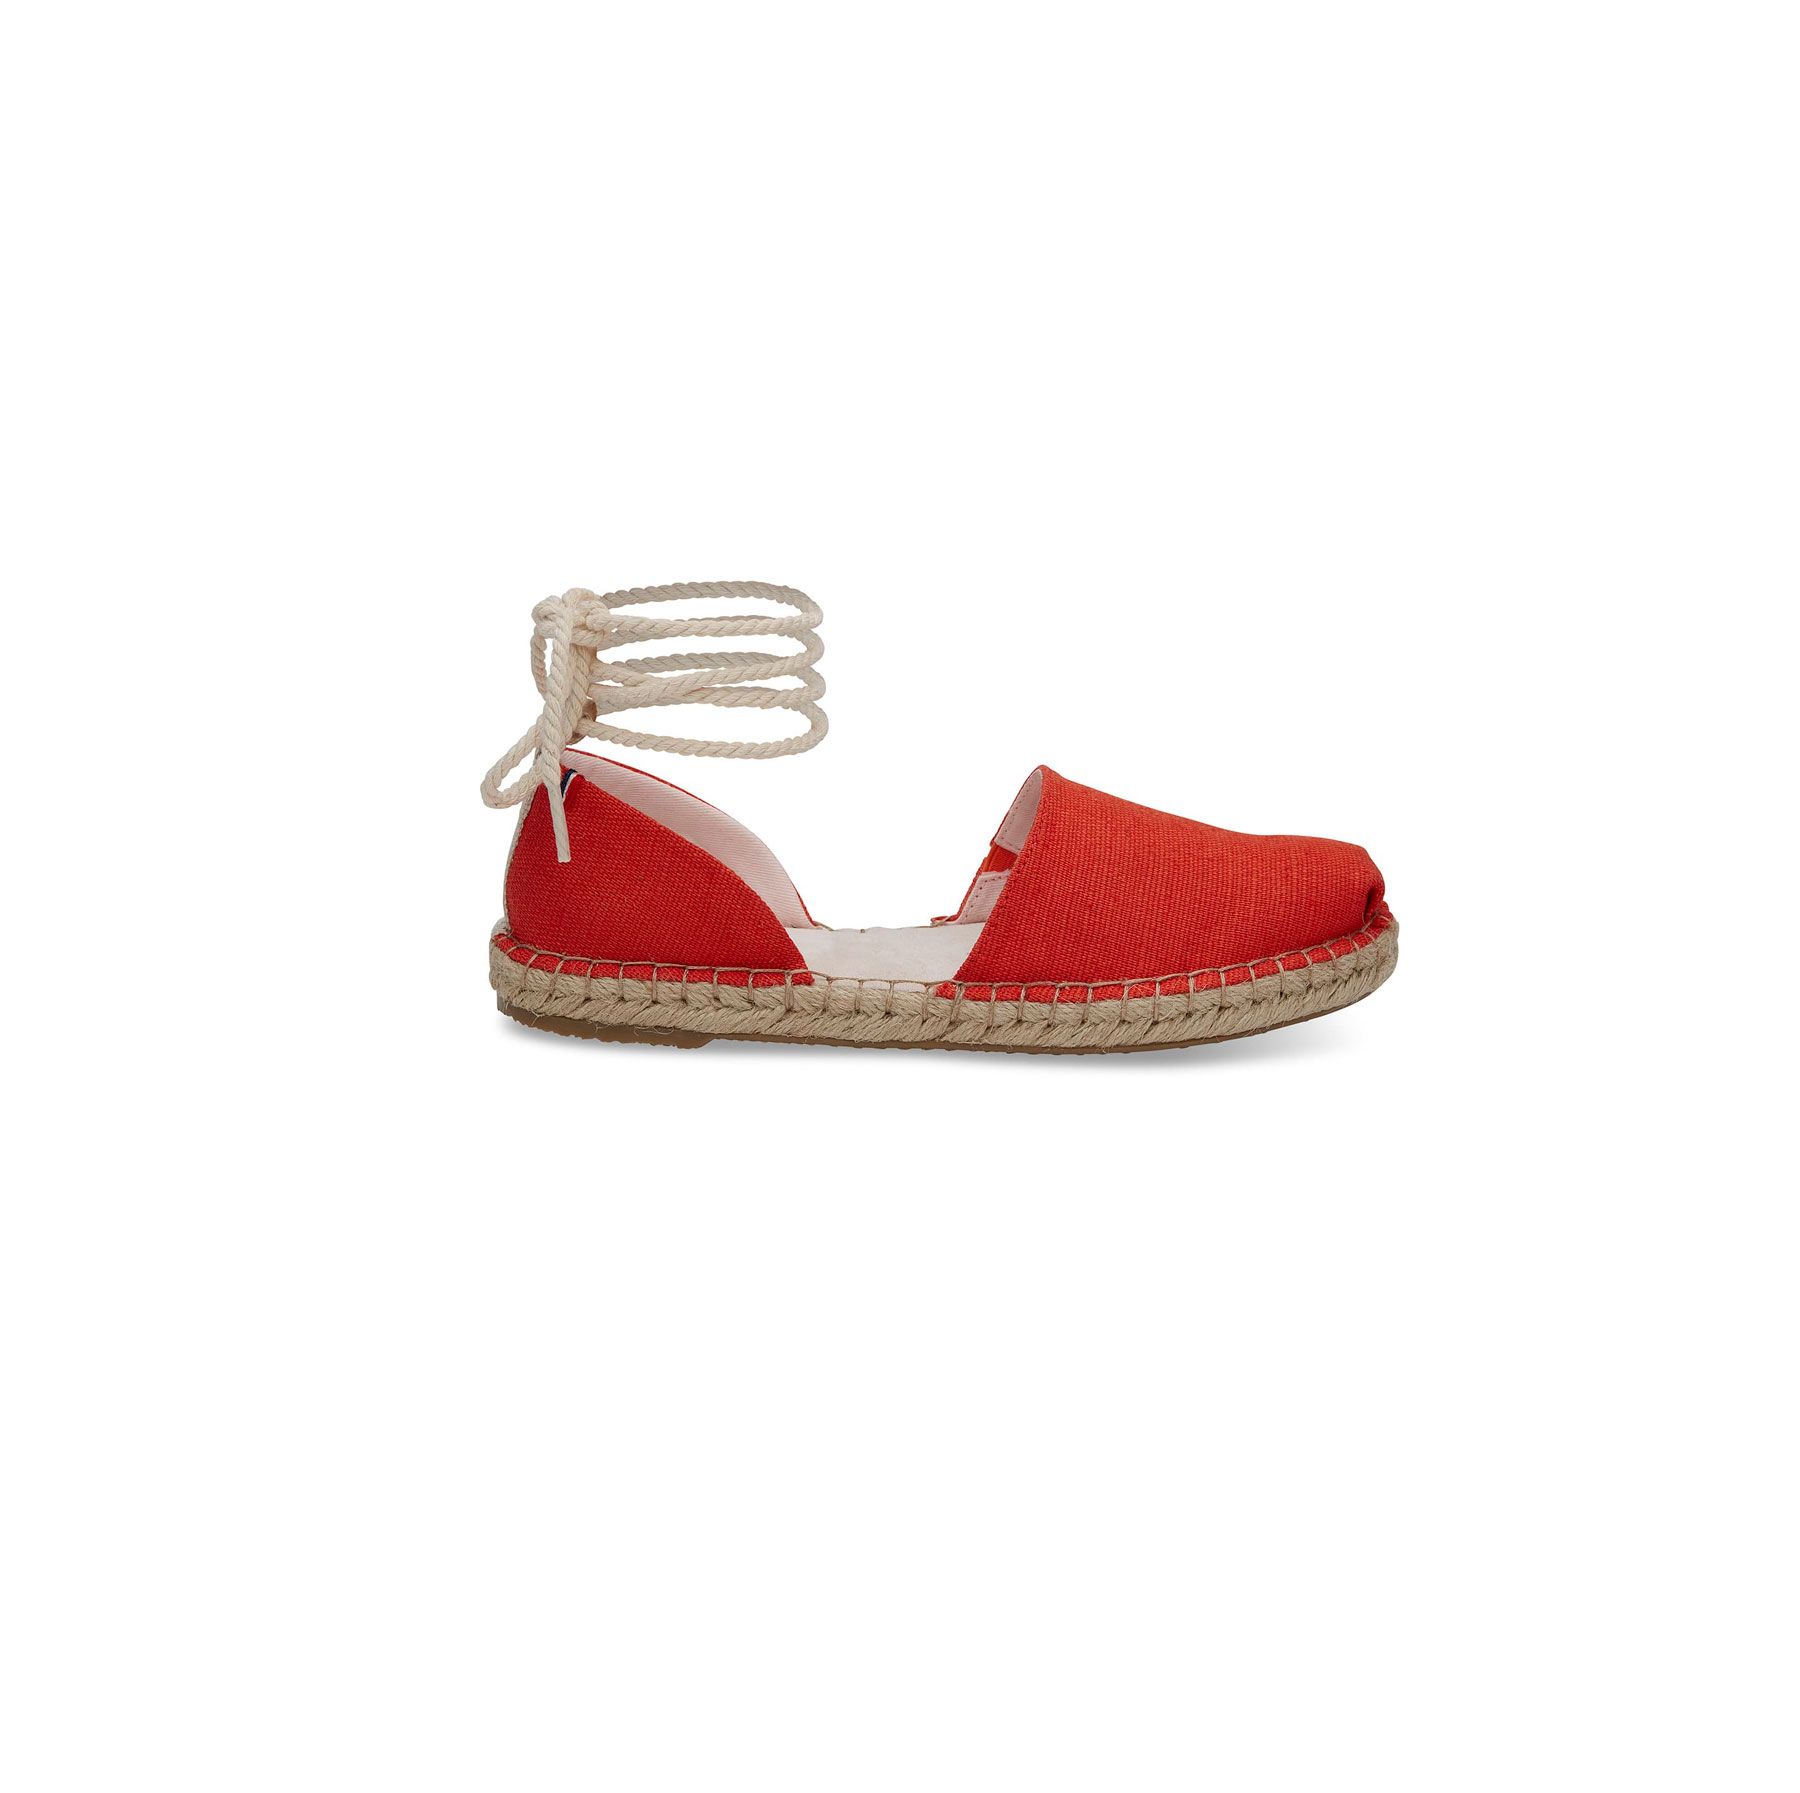 Red Clare V. x TOMS sandals